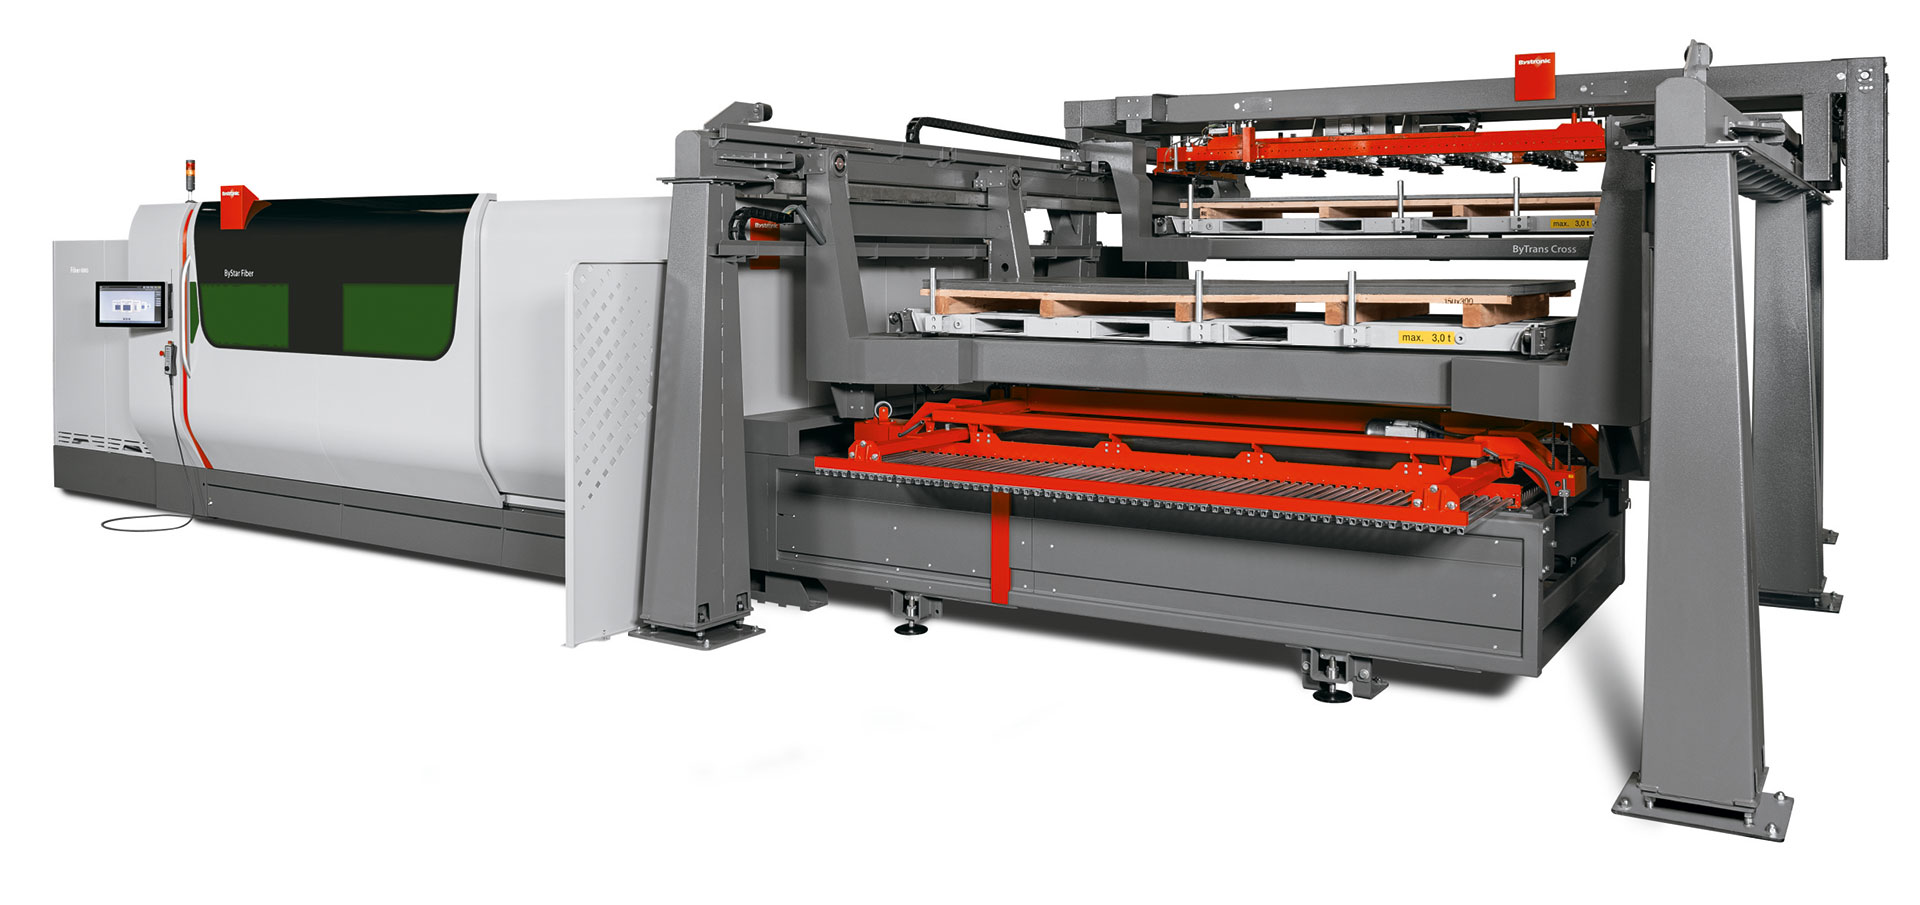 ByTrans Cross 4020: Large-format automation